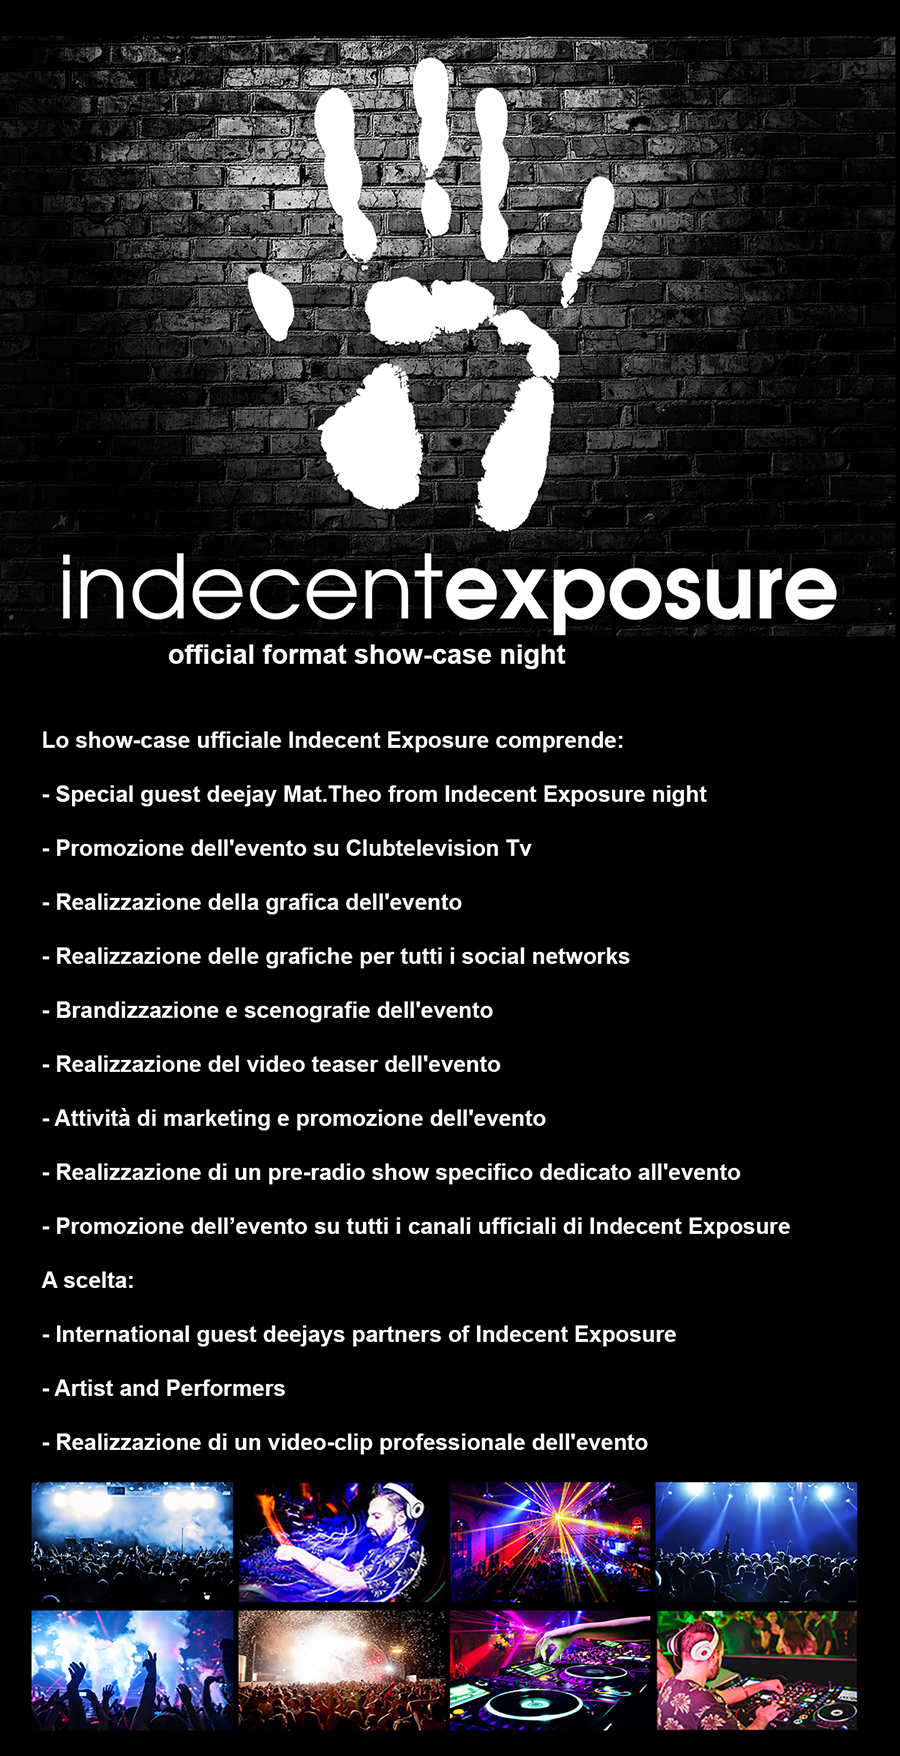 grafica-format-indecent-exposure2x